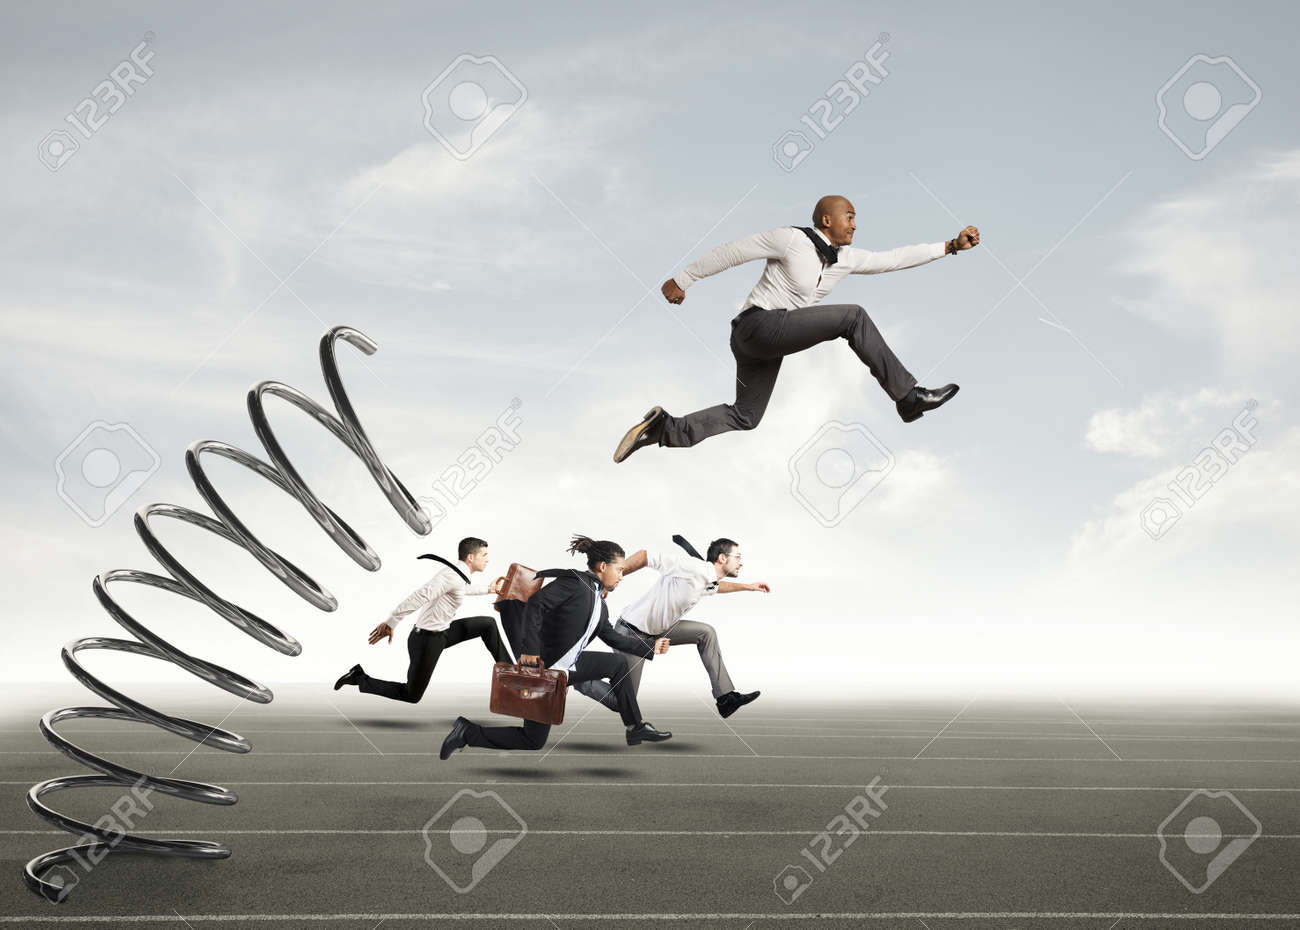 Businessman jumping on a spring during a race with opponents Standard-Bild - 64803531